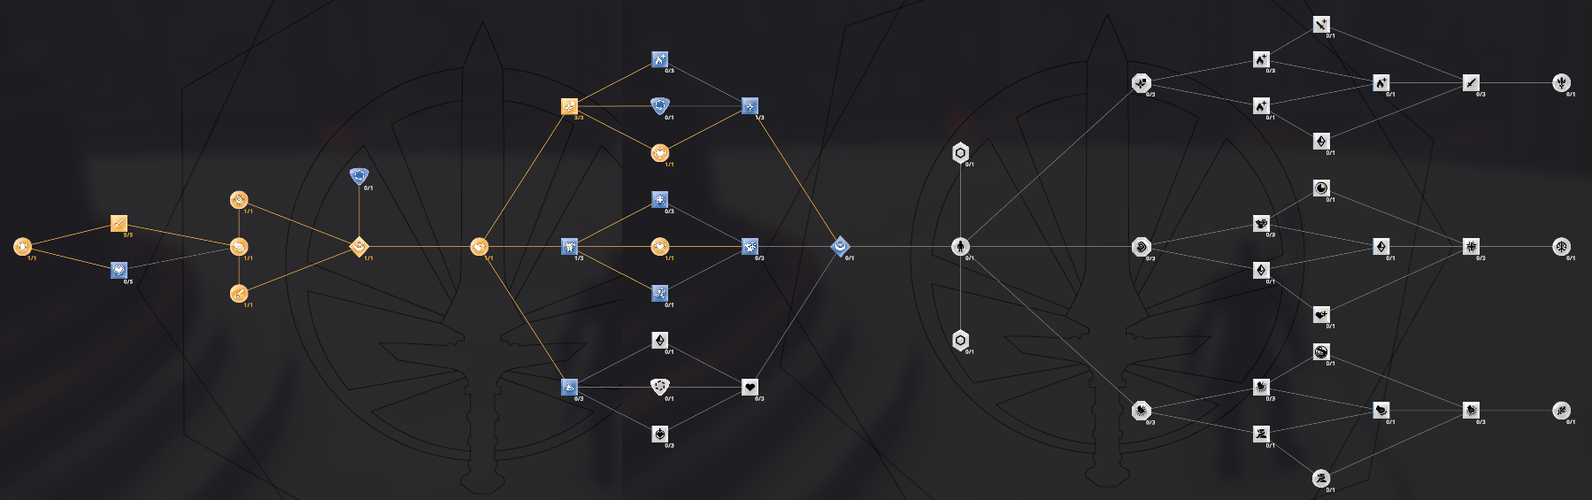 Talent Tree - Templar.png